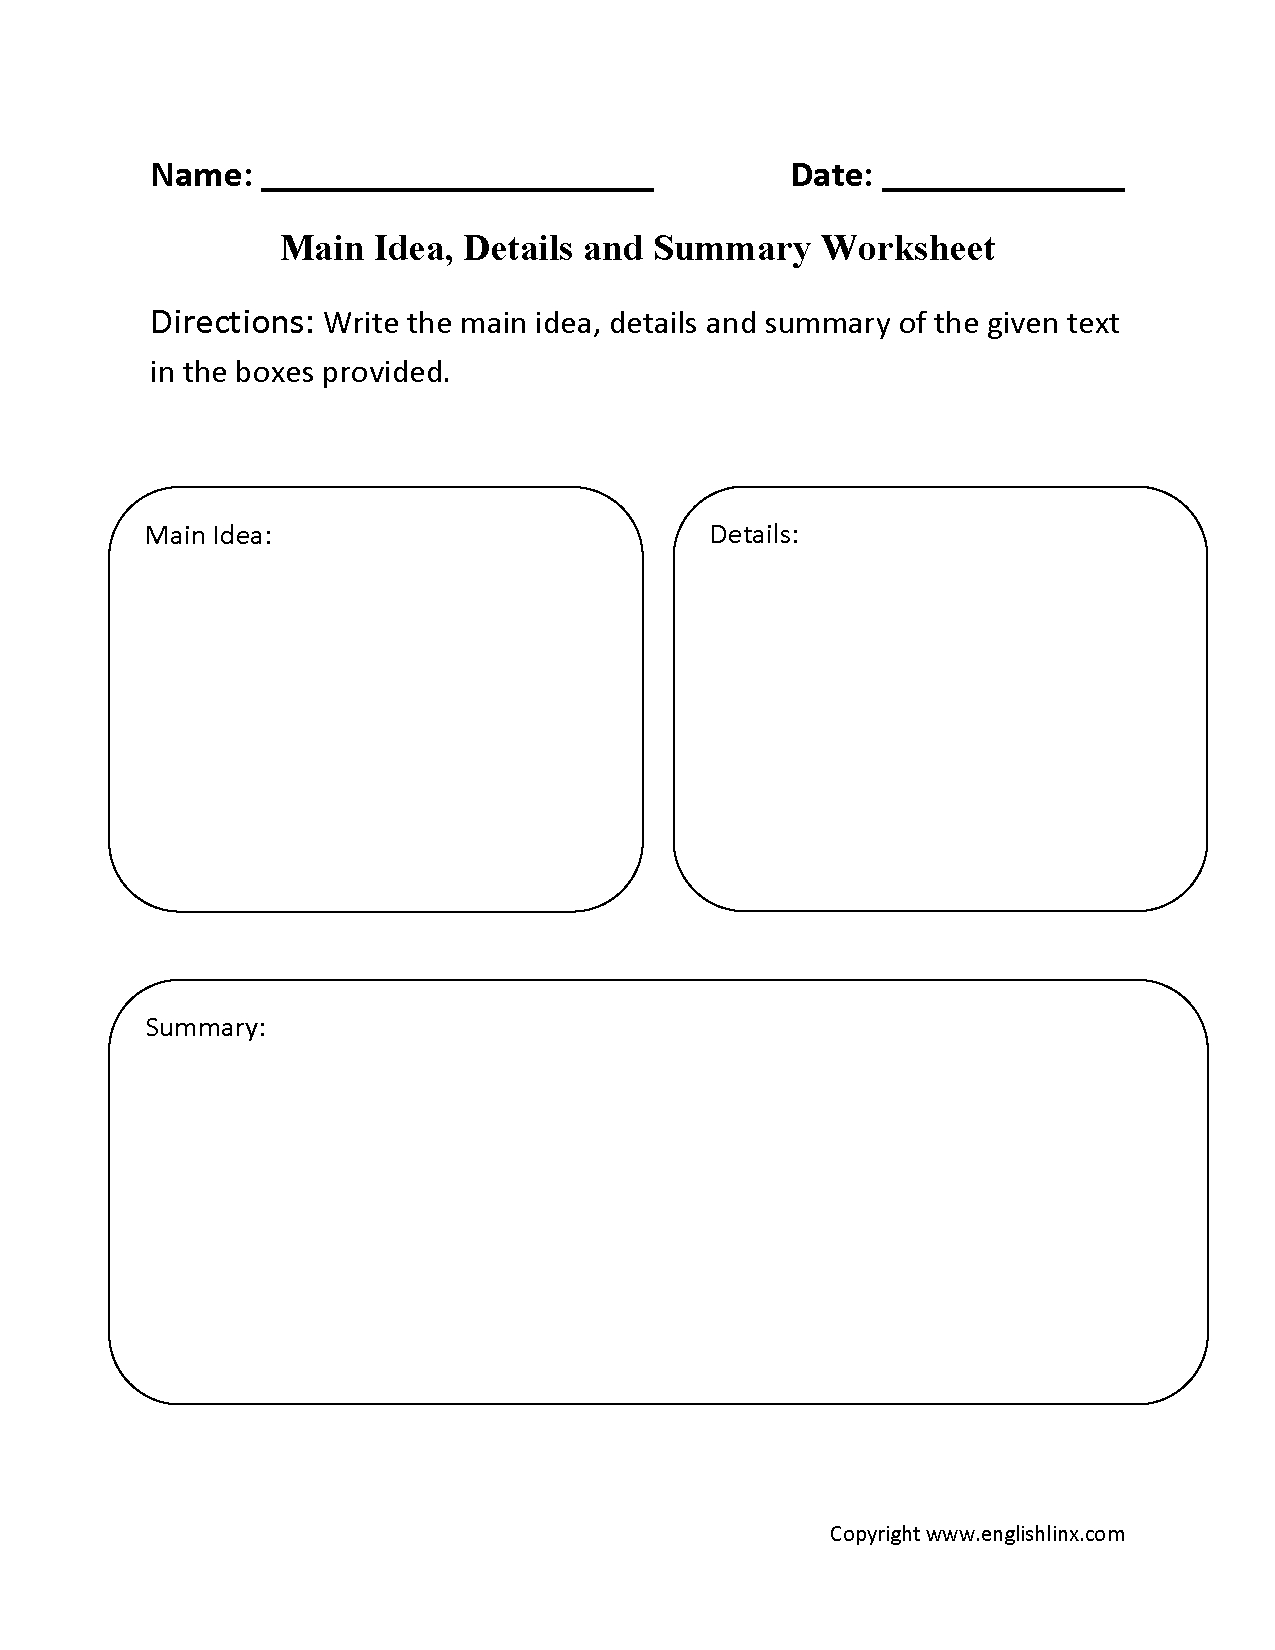 Main Idea Worksheets | Main Idea, Details And Summary Worksheet - Free Printable Main Idea Graphic Organizer